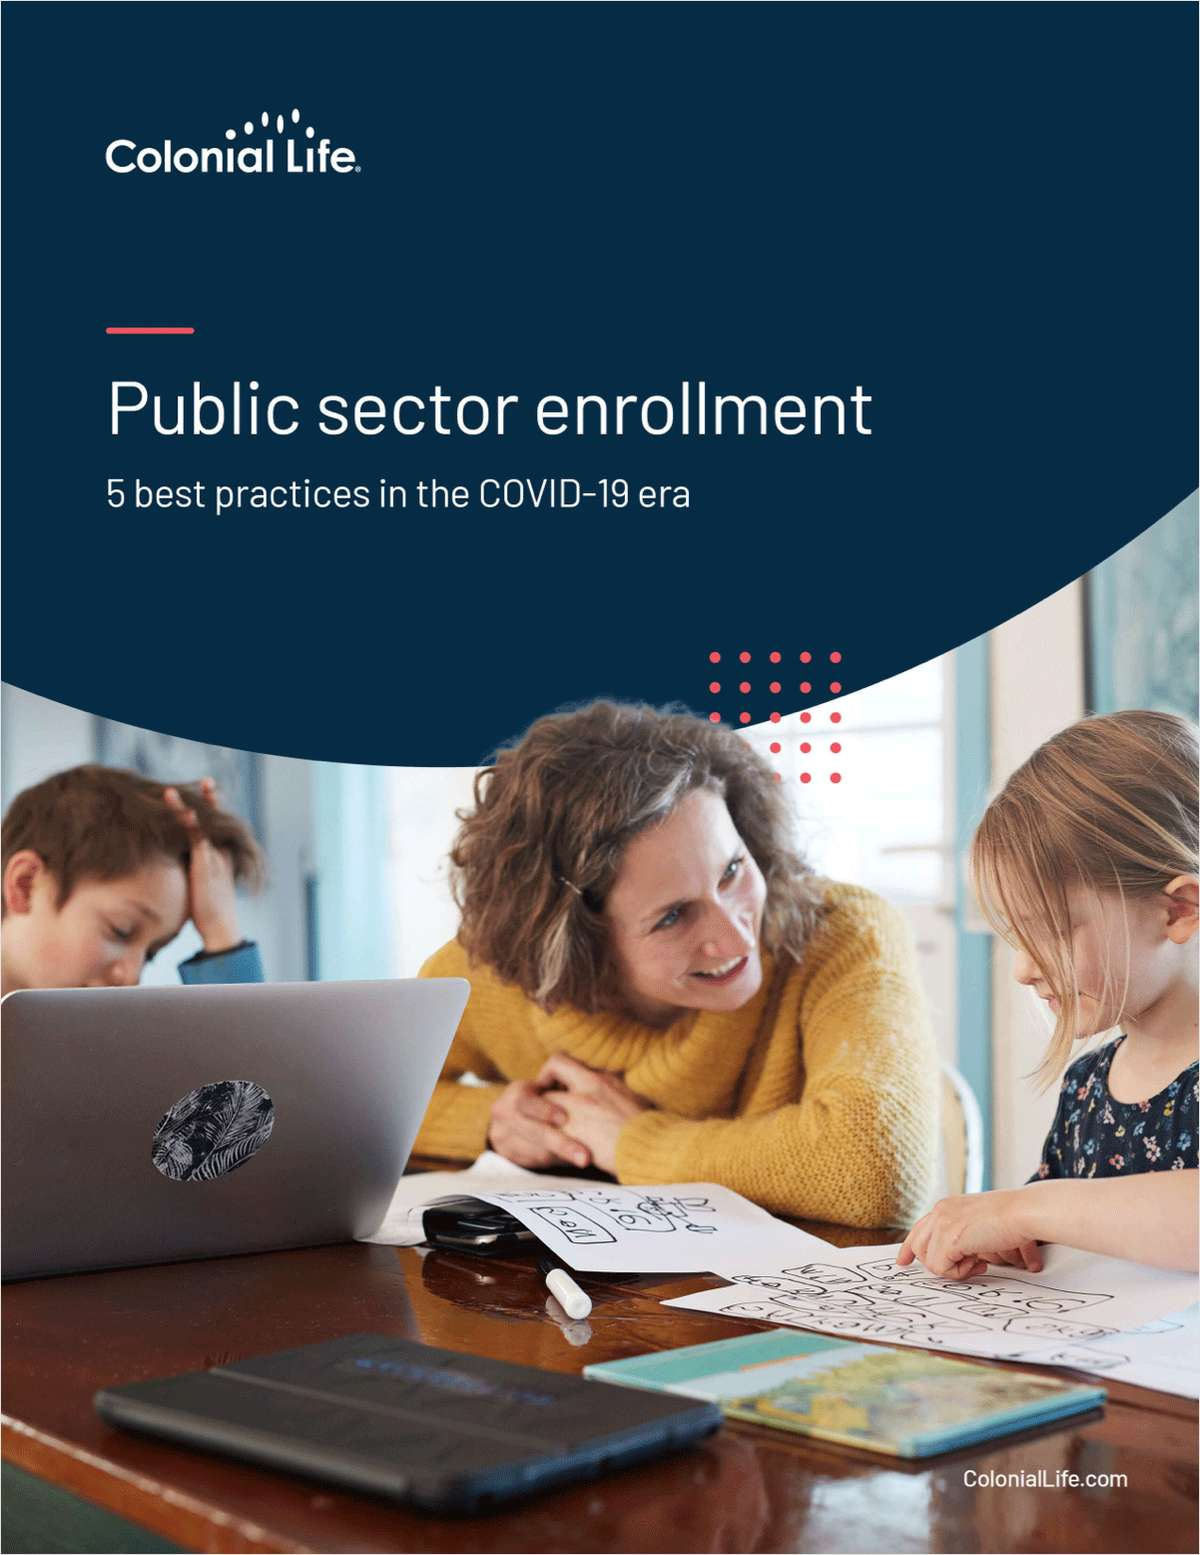 Public Sector: 5 Best Practices for Enrollment in the COVID-19 Era